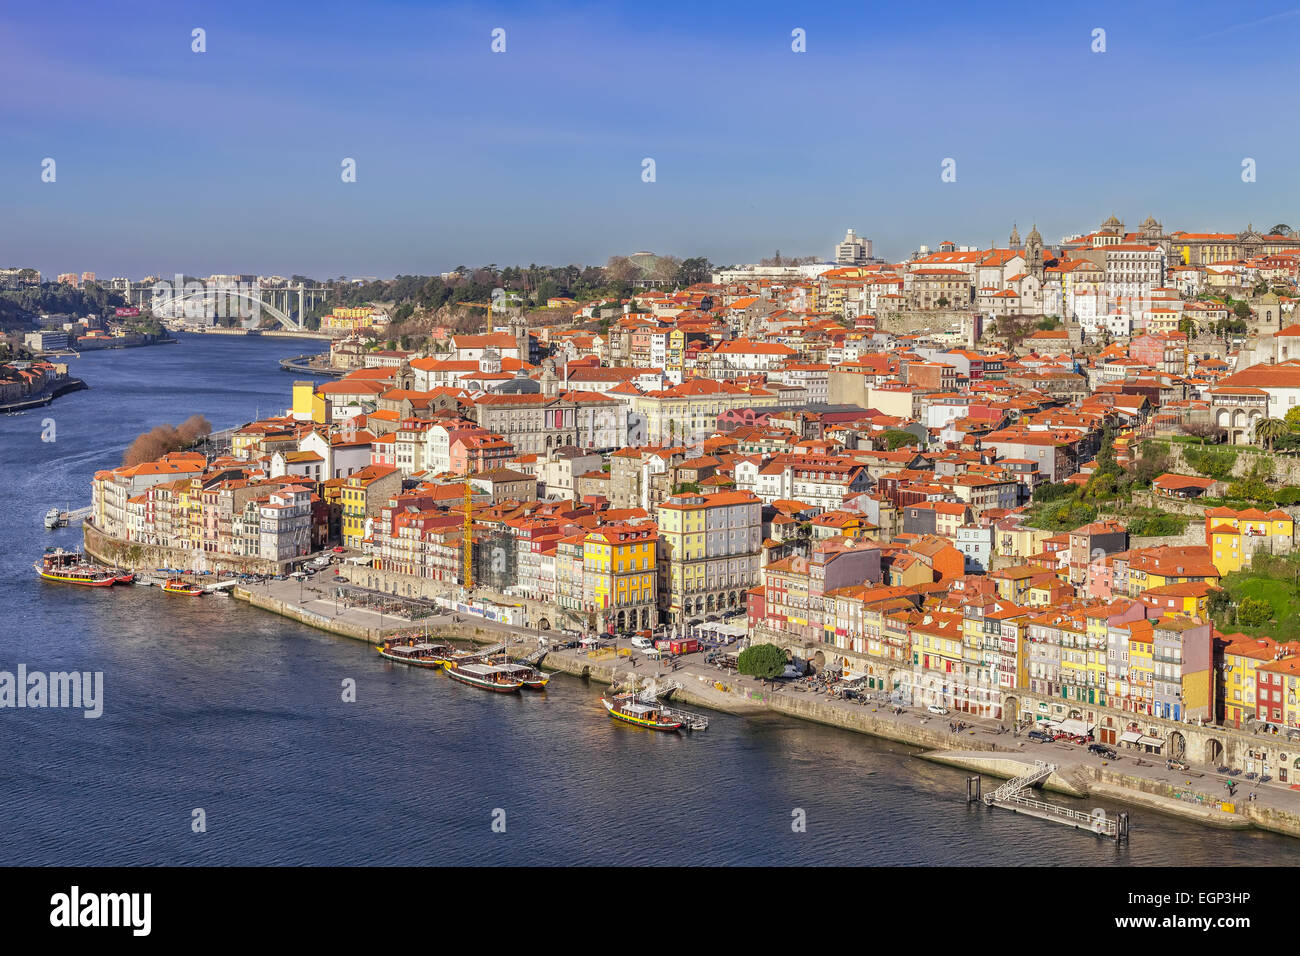 Porto, Portugal. The typical colorful buildings of the Ribeira District and the Douro River in the city of Porto, - Stock Image